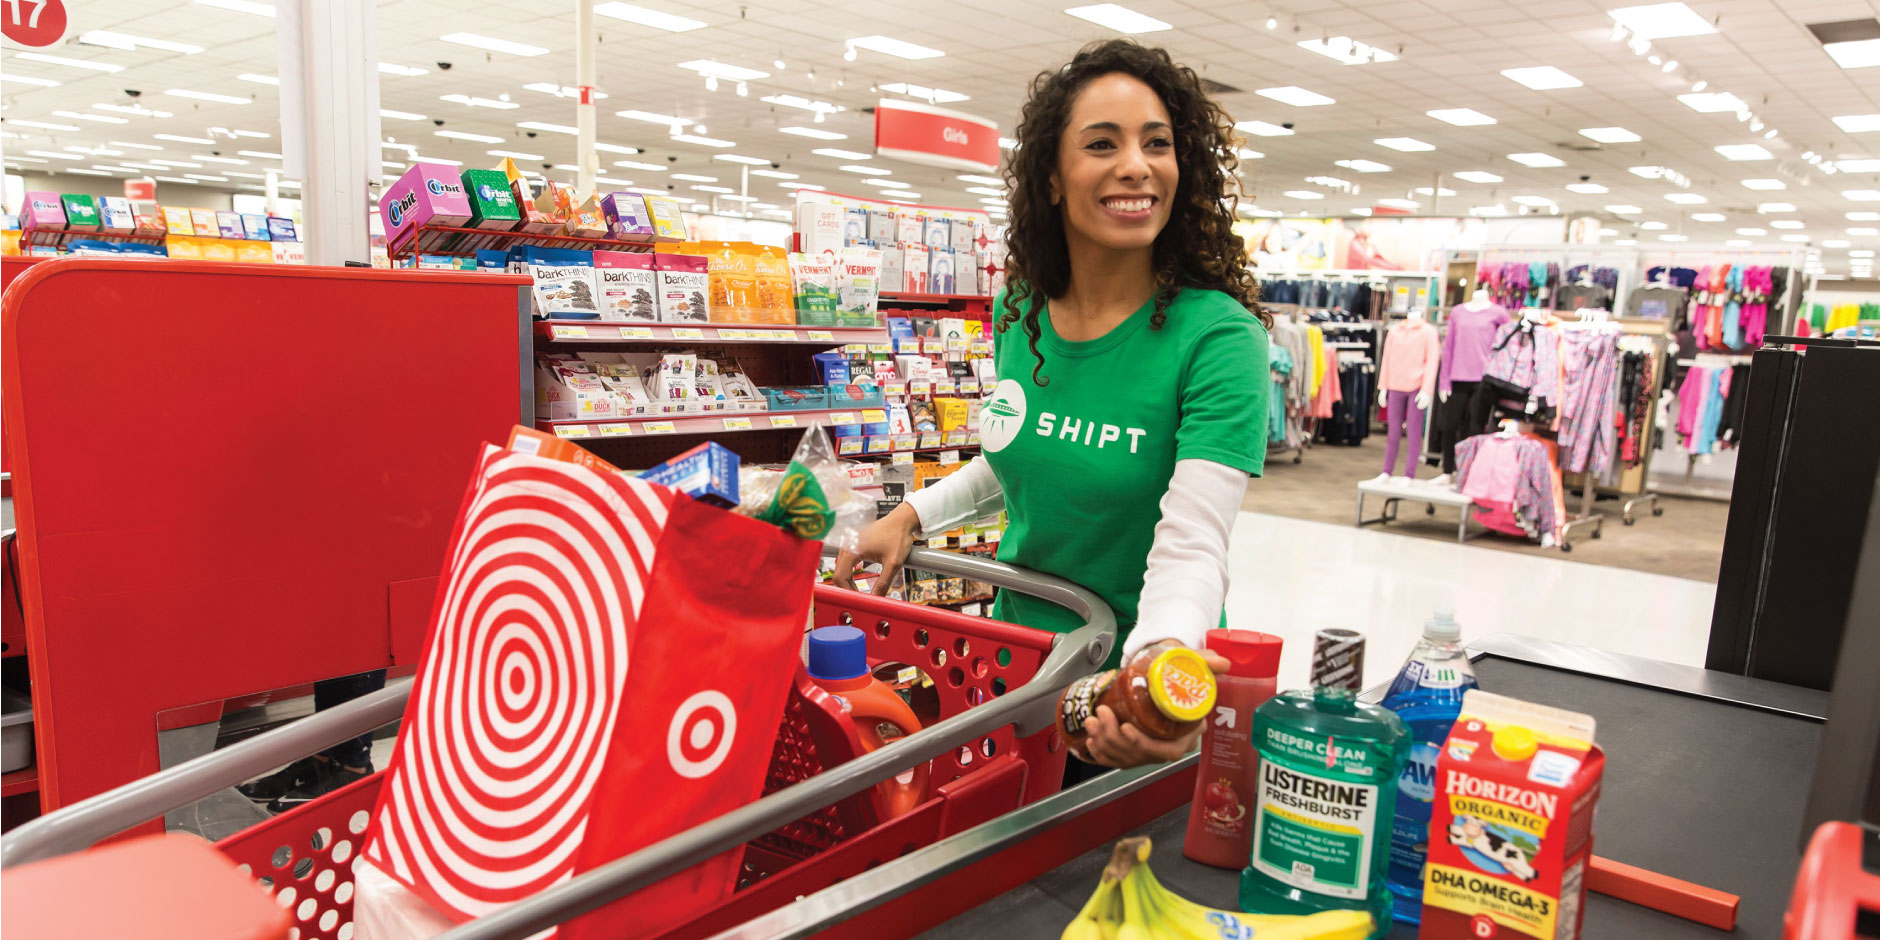 A woman in a green Shipt shirt pushes a red cart full of essentials through a Target checkout lane